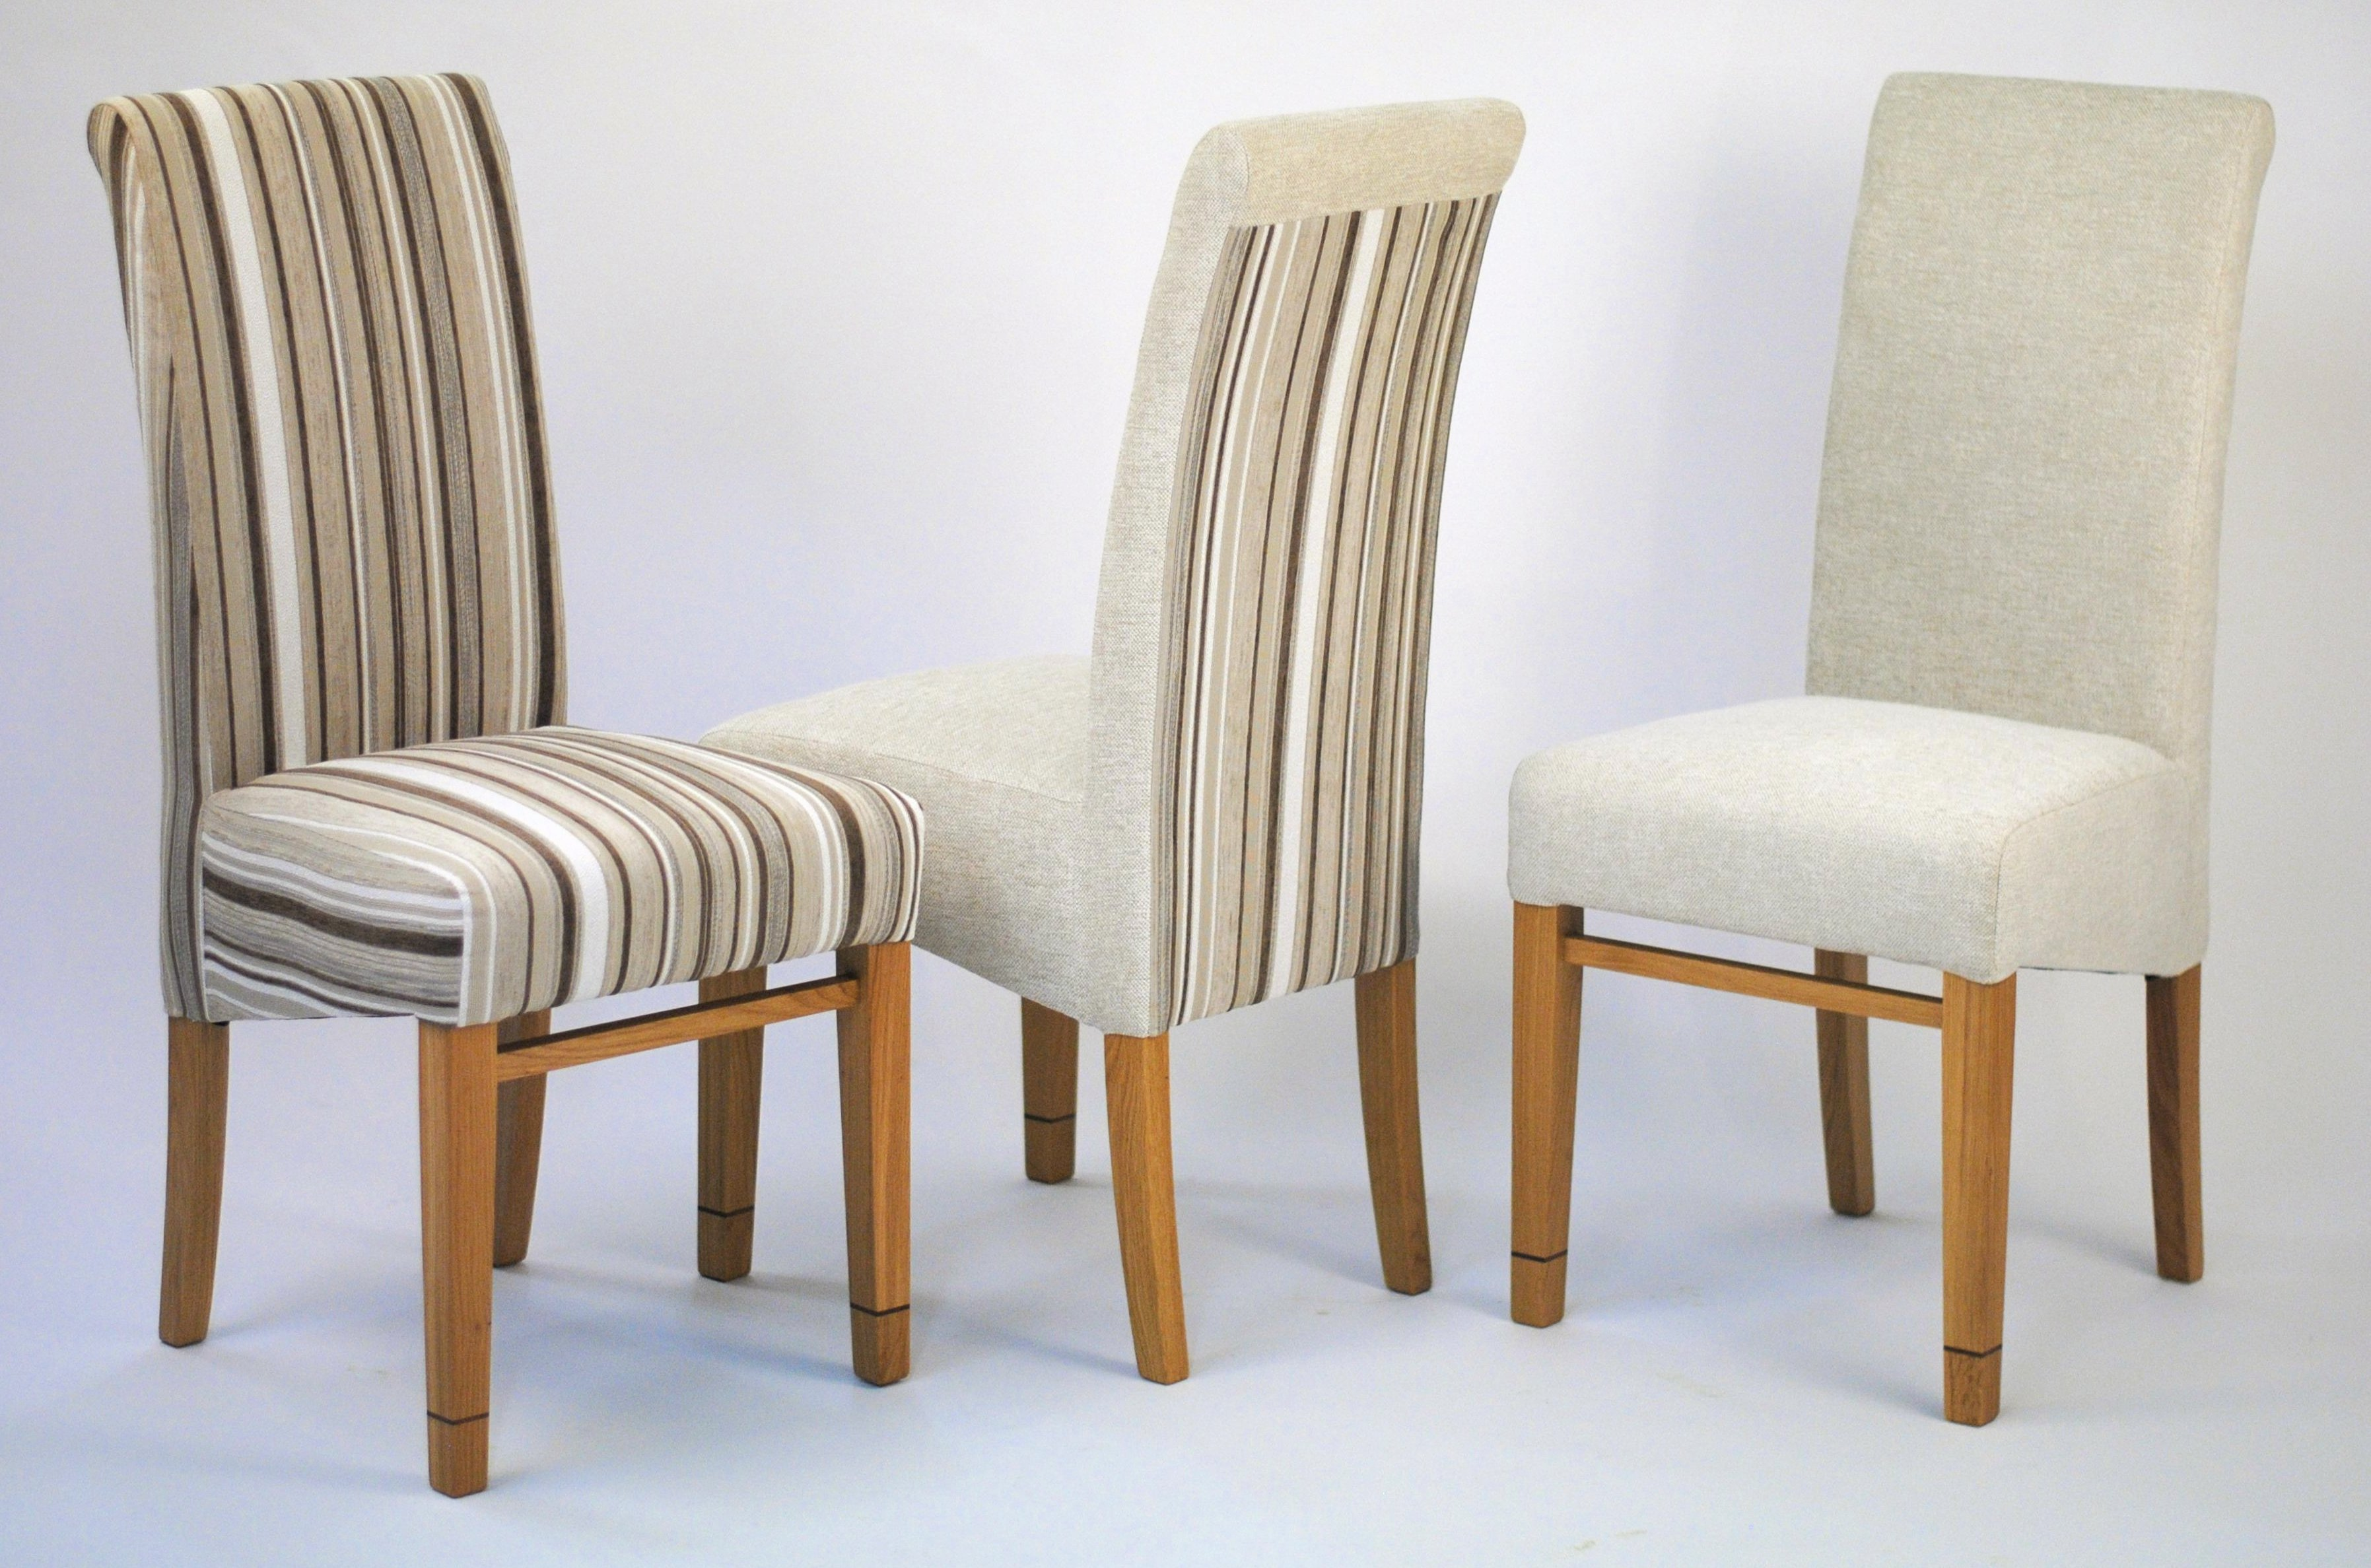 Upholstered Dining Chair  Tanner Furniture Designs